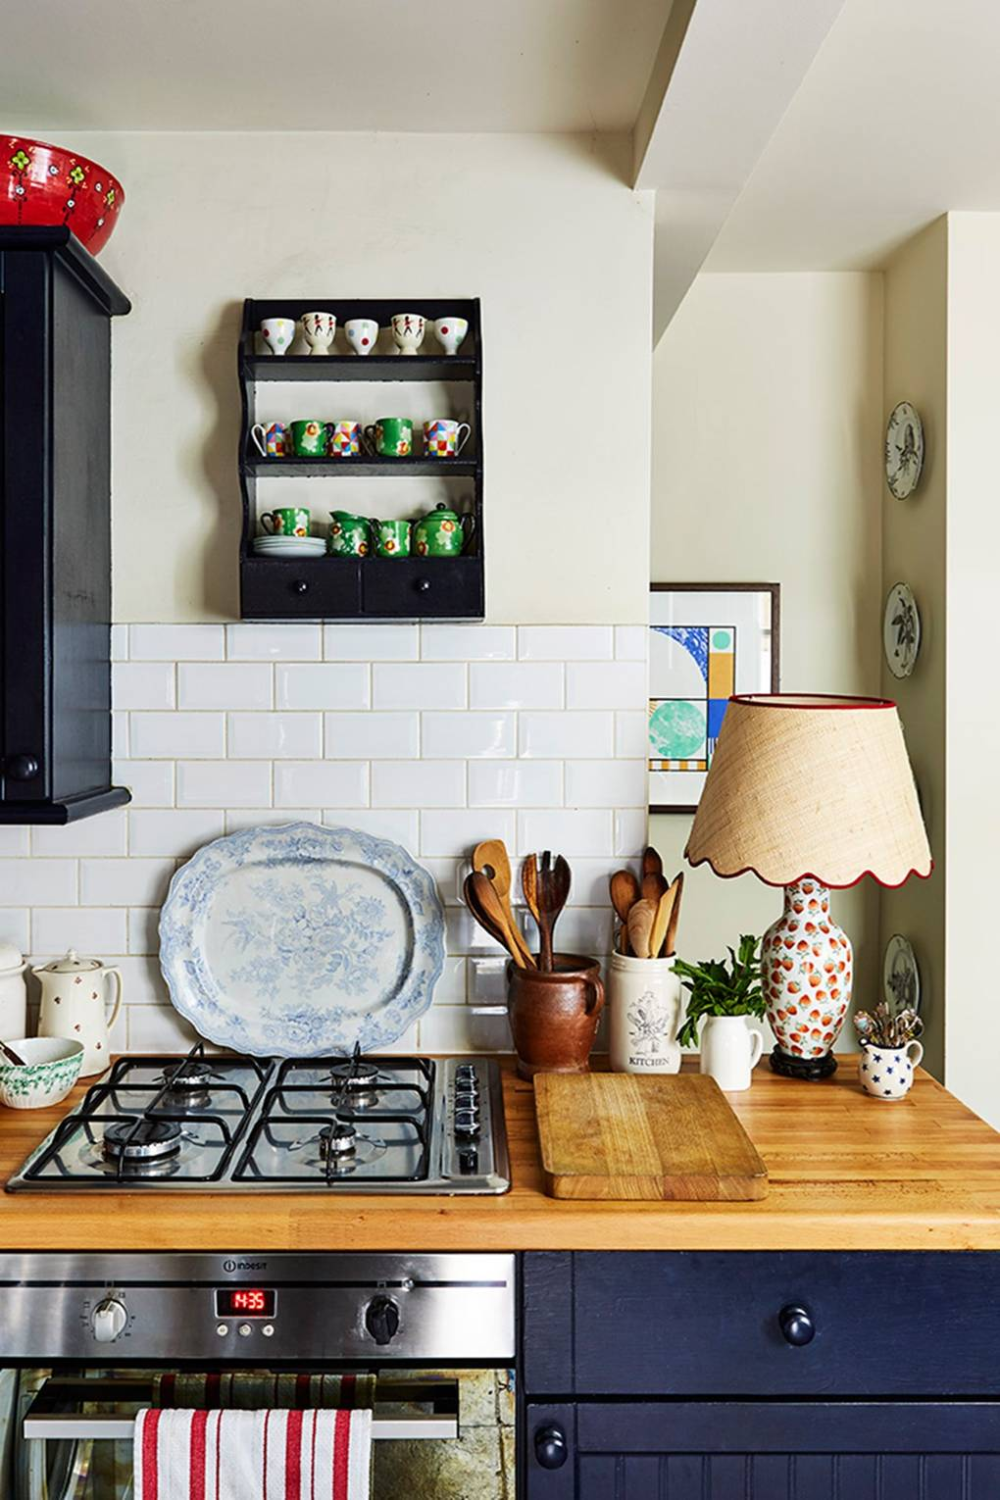 Lamps On Kitchen Counters Google Search Kitchen Remodel Small Country Kitchen Designs Country Cottage Kitchen